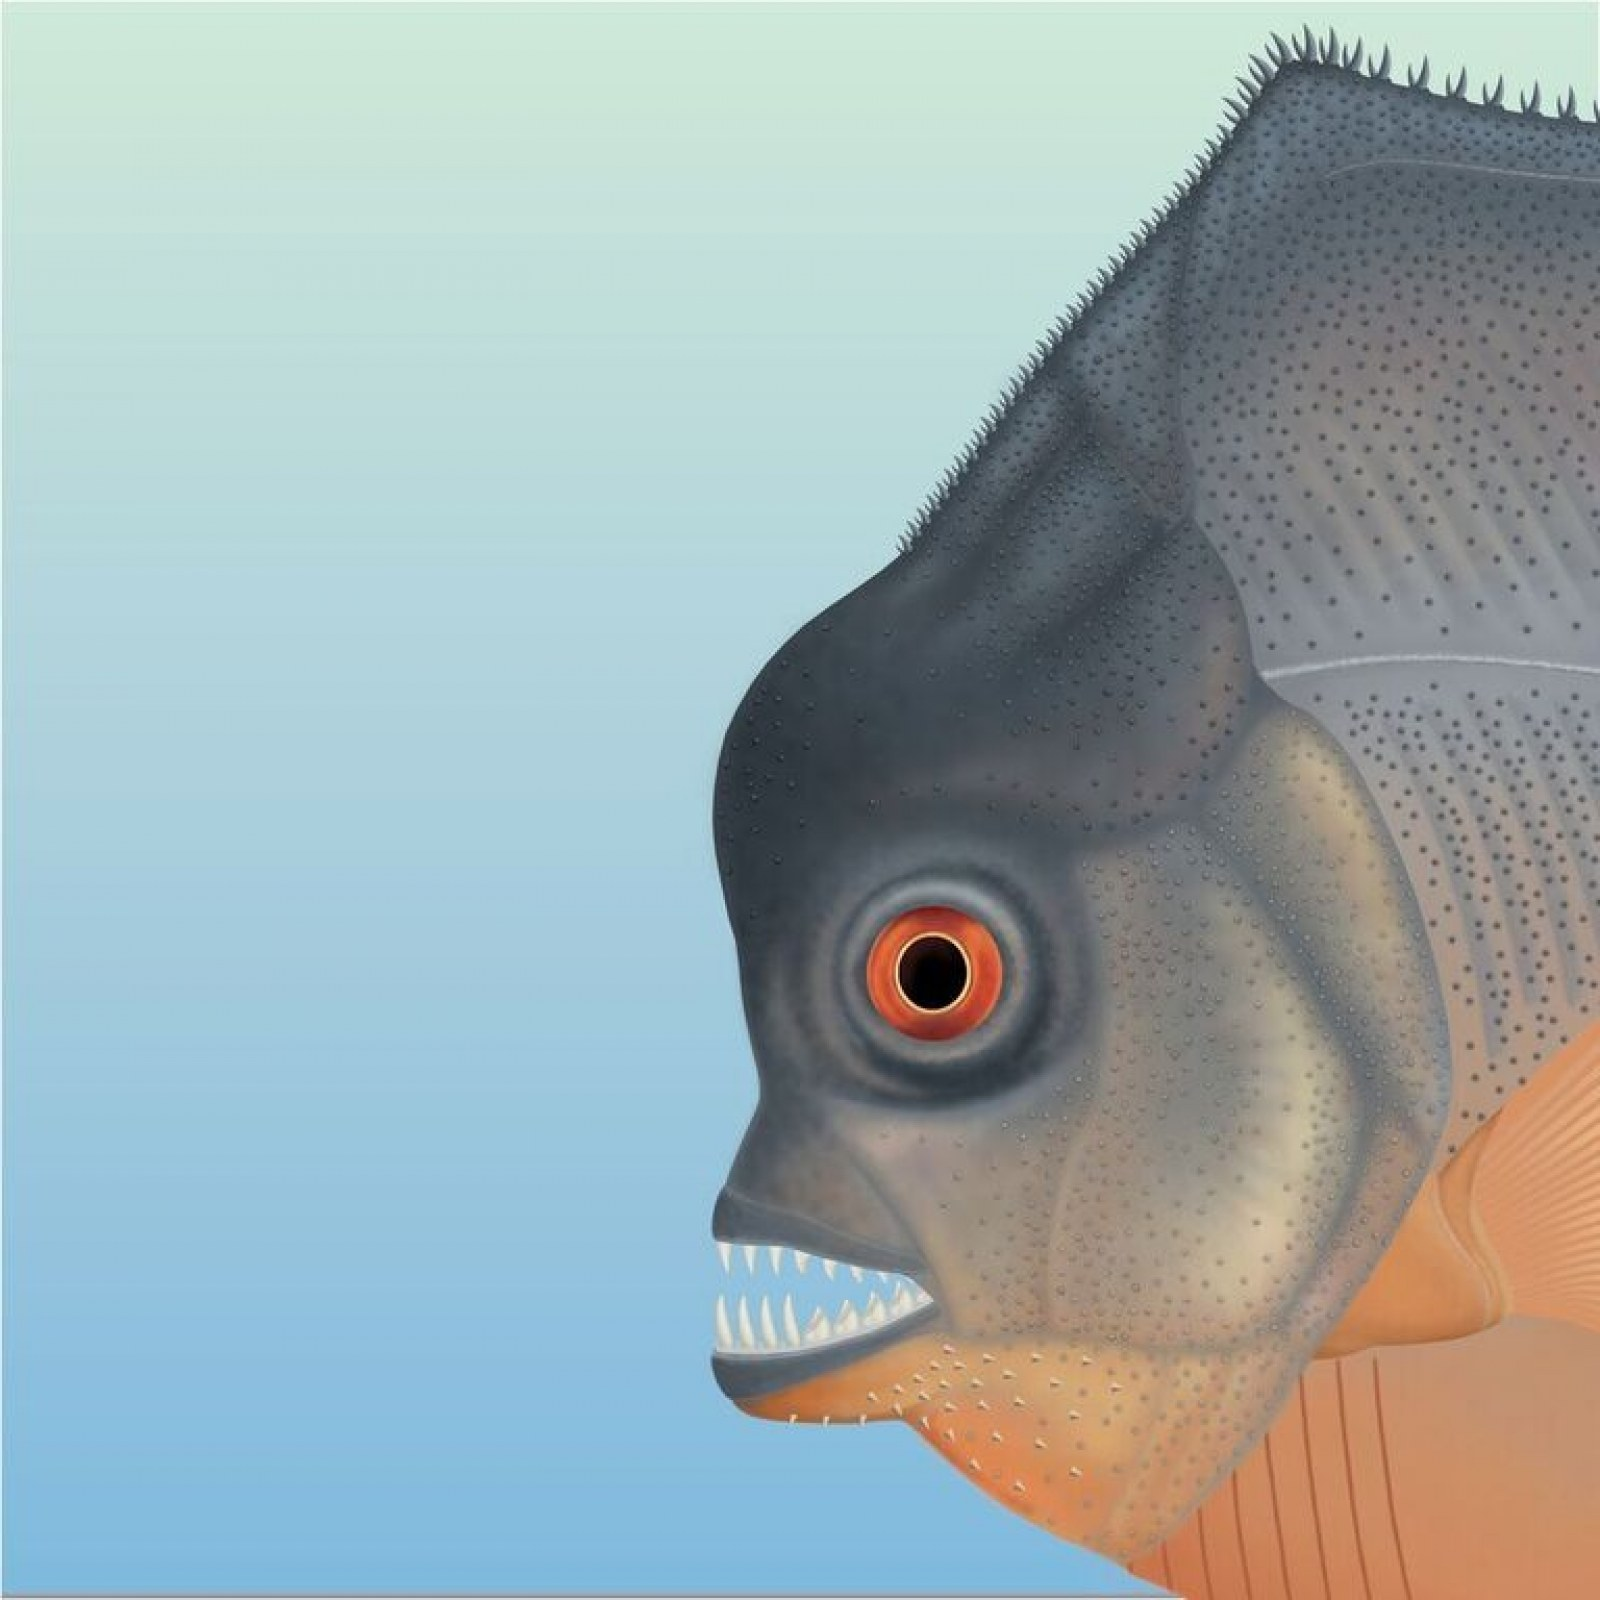 Ancient Flesh-Eating Piranha-Like Fish That Lived Alongside